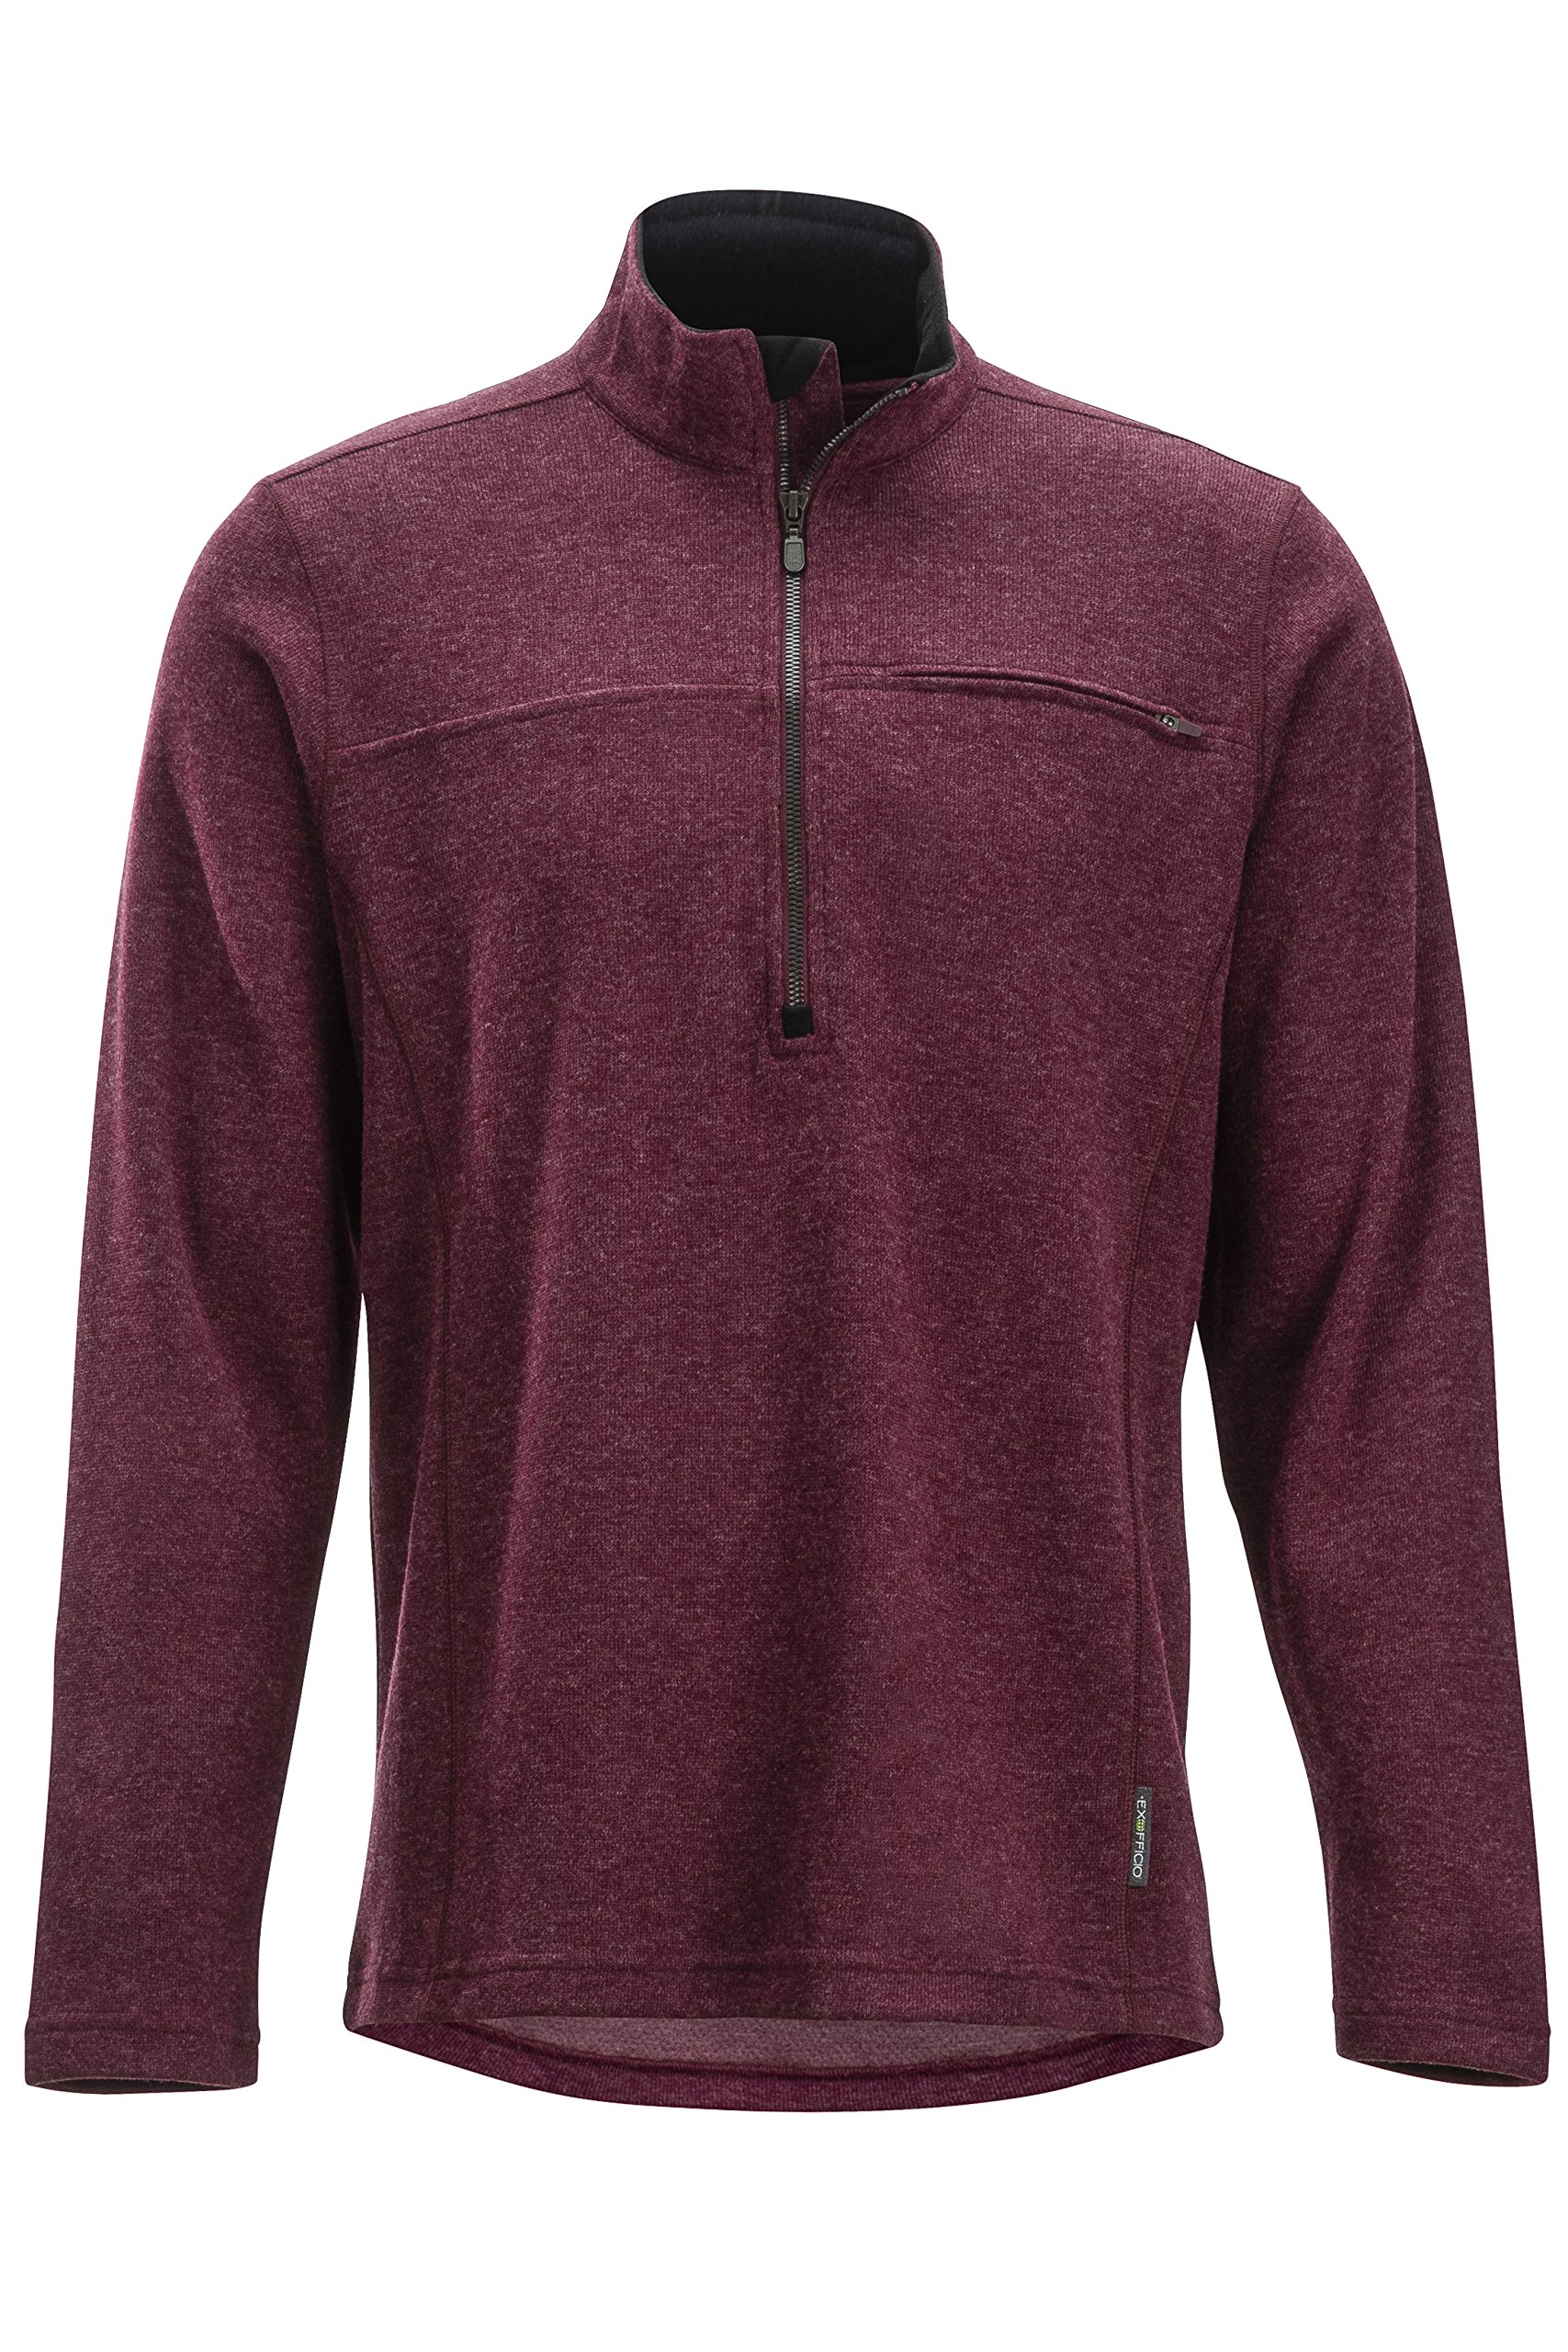 ExOfficio Men's Caminetto 1/4 Zip Neck Long Sleeve Hiking Shirts, Baroque Heather, Large by ExOfficio